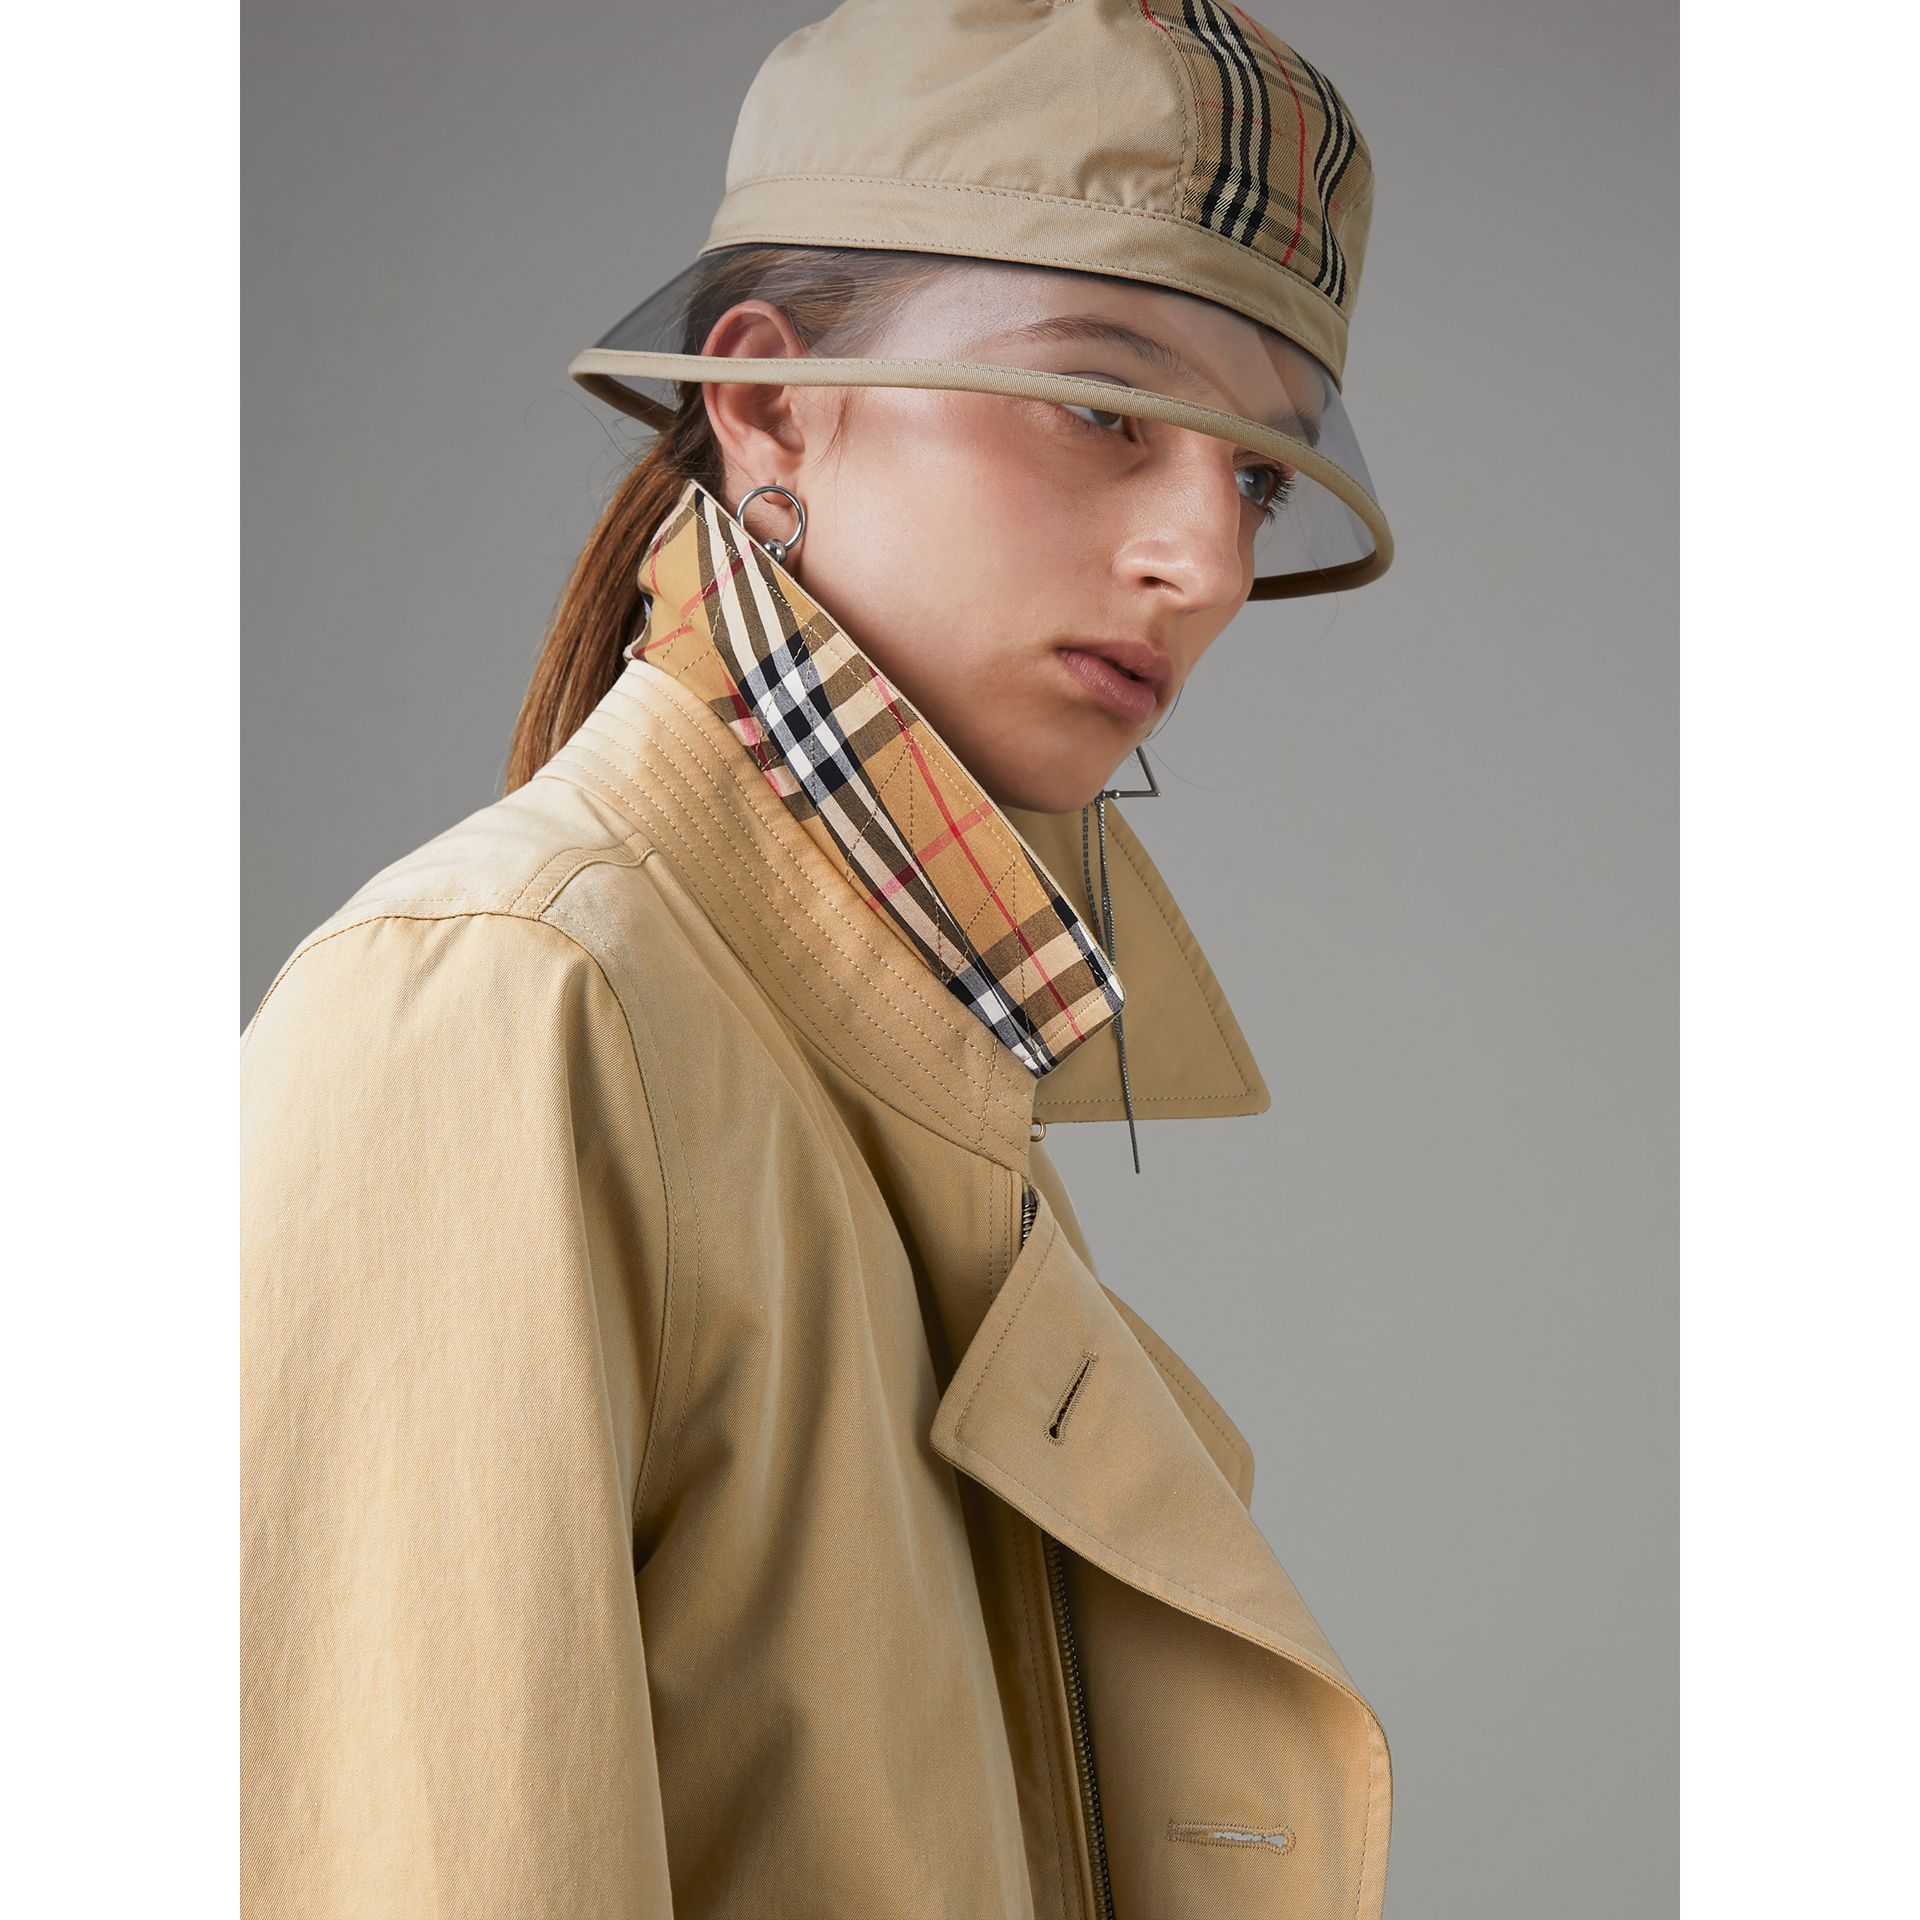 Trench Harrington reconstitué en gabardine tropicale (Miel) - Femme | Burberry - photo de la galerie 4